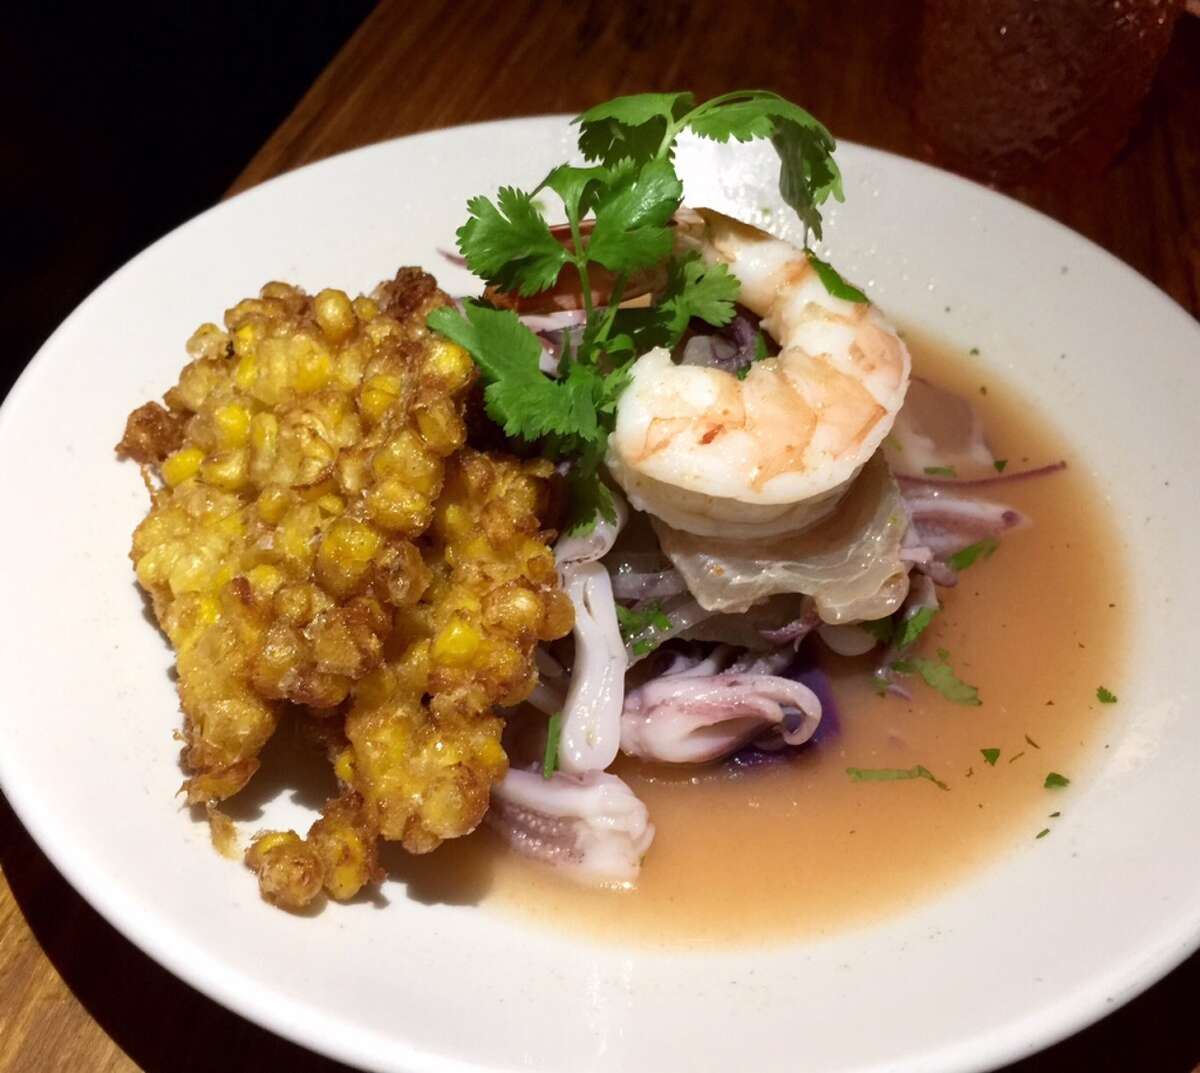 The Peruvian ceviche has the traditional corn, but encased in a crisp batter ($14).